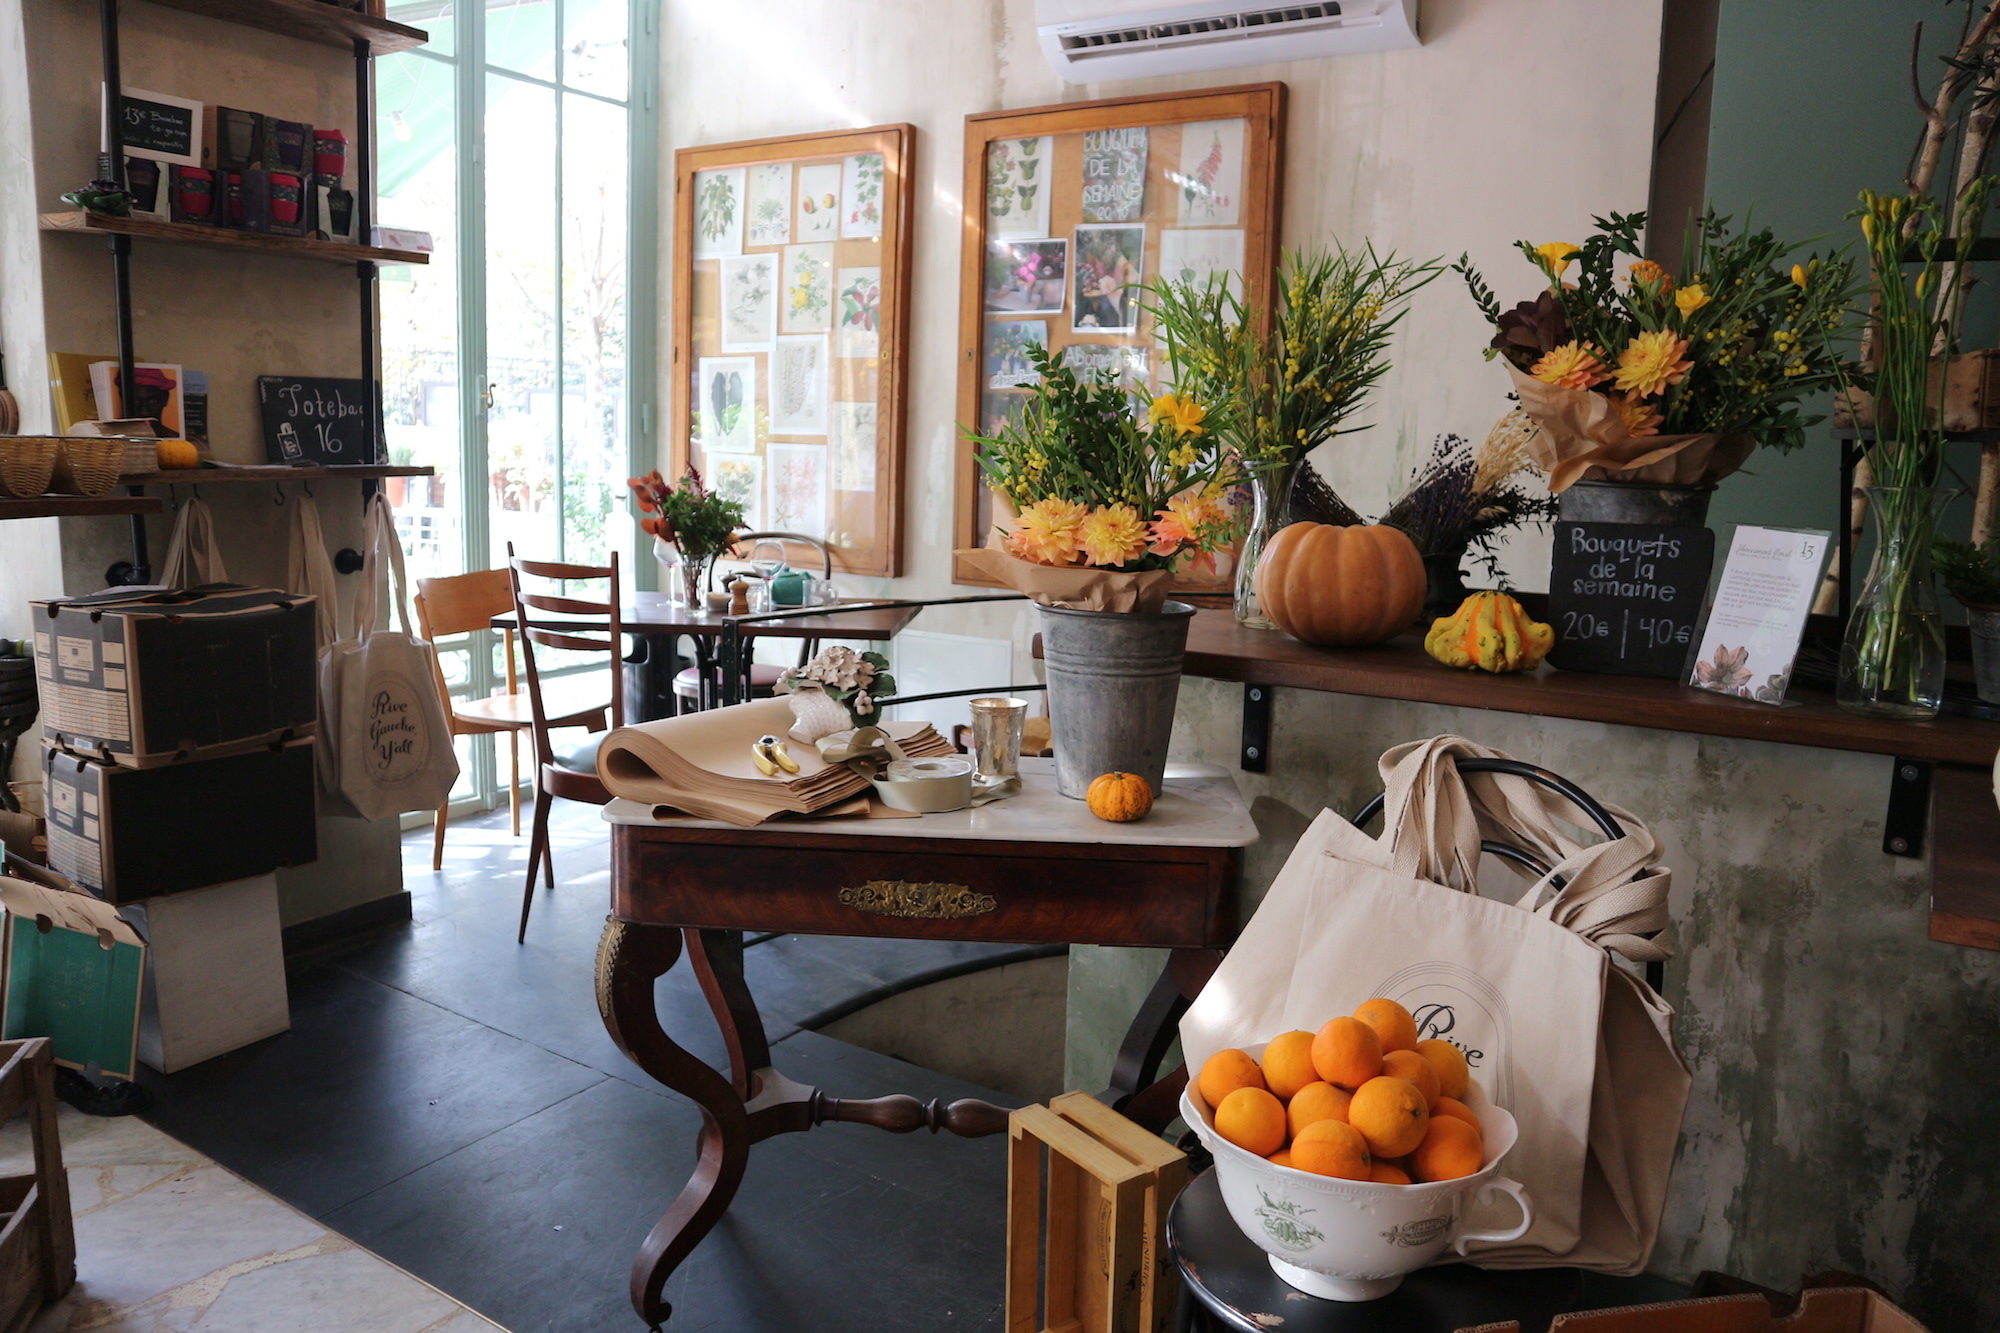 Inside Treize au Jardin coffee shop in Paris, where the rustic decor with plants and fruit reflect the home-made food served here.